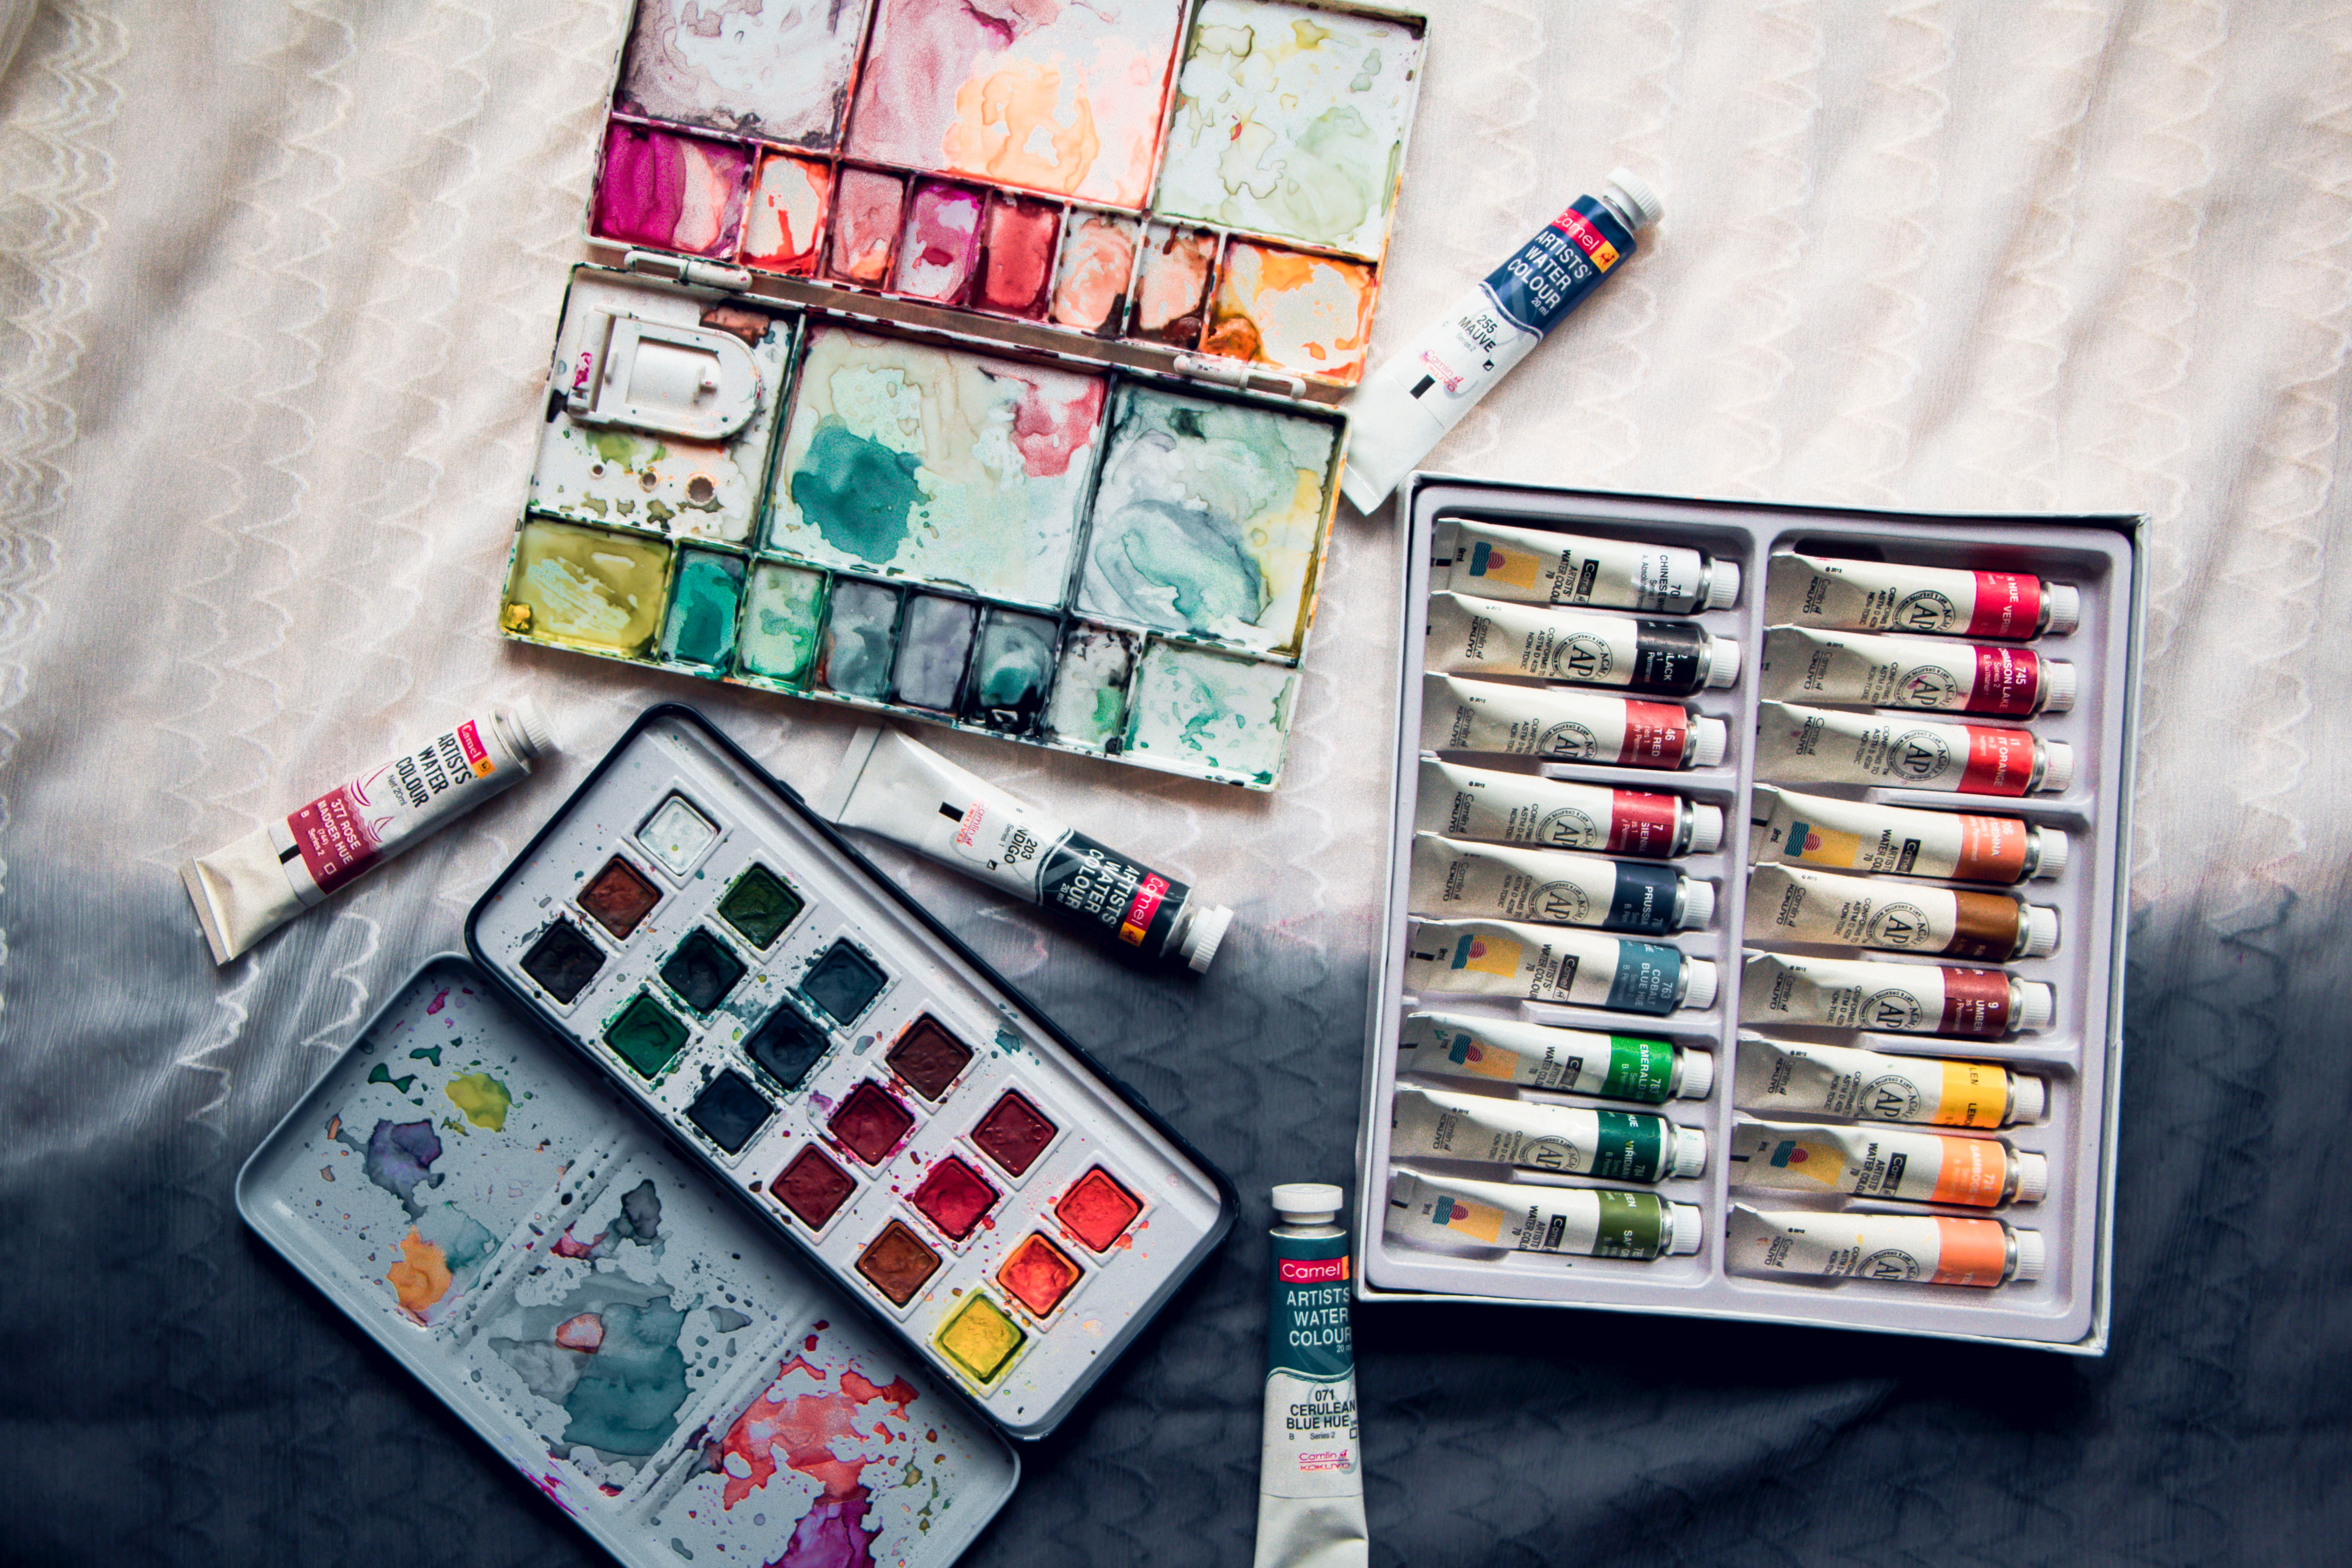 popsiclearts | Products & Services - Creative Workshop